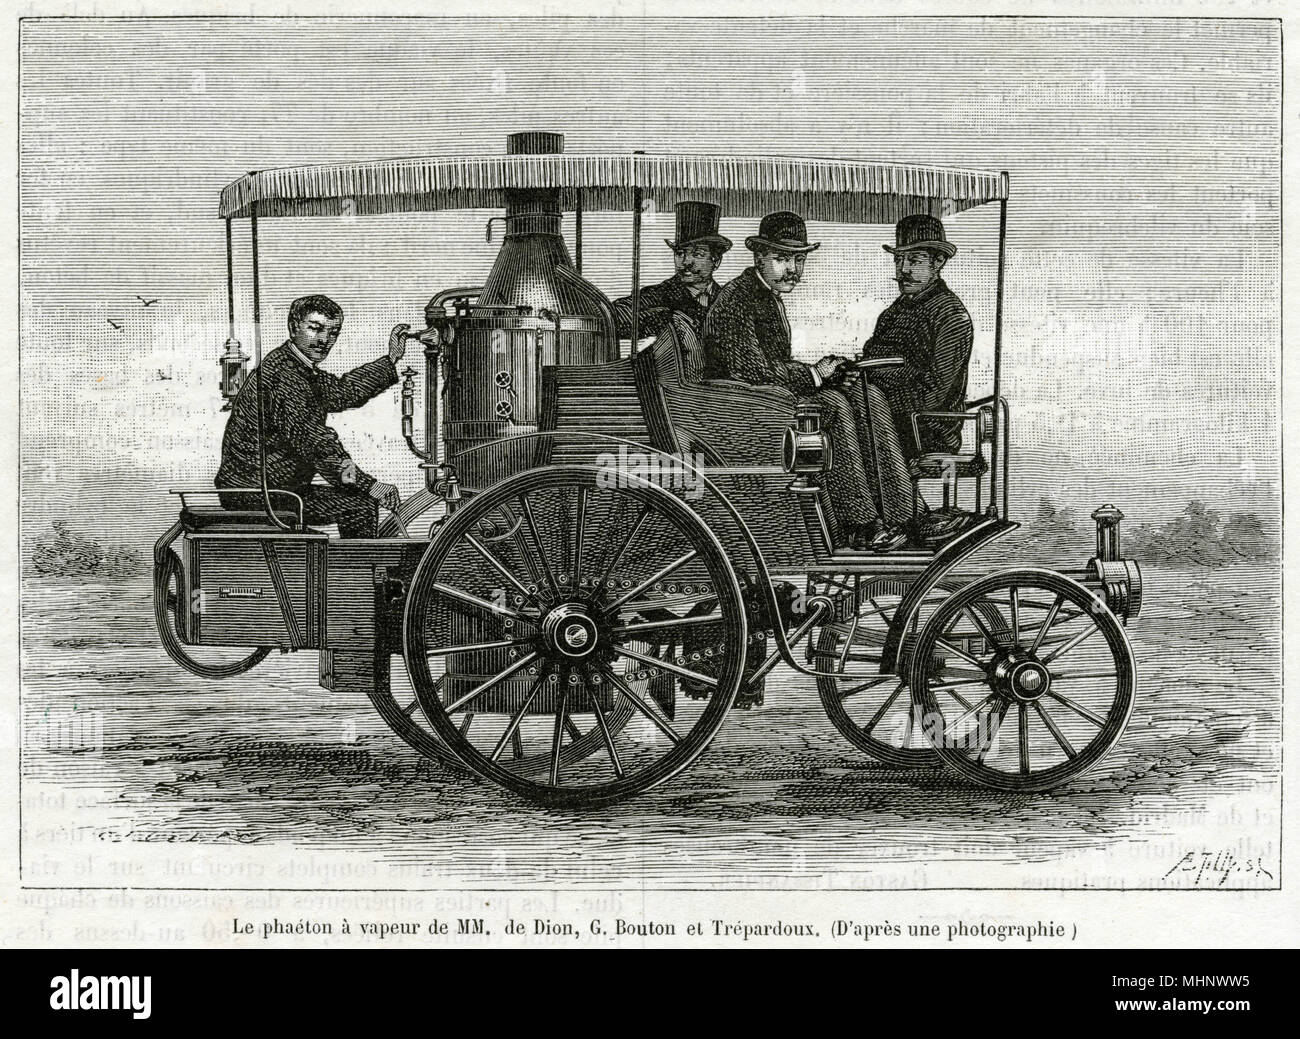 De Dion-Bouton was a French automobile manufacturer, here is one of thier inventions in August 1884.     Date: August 1884 Stock Photo